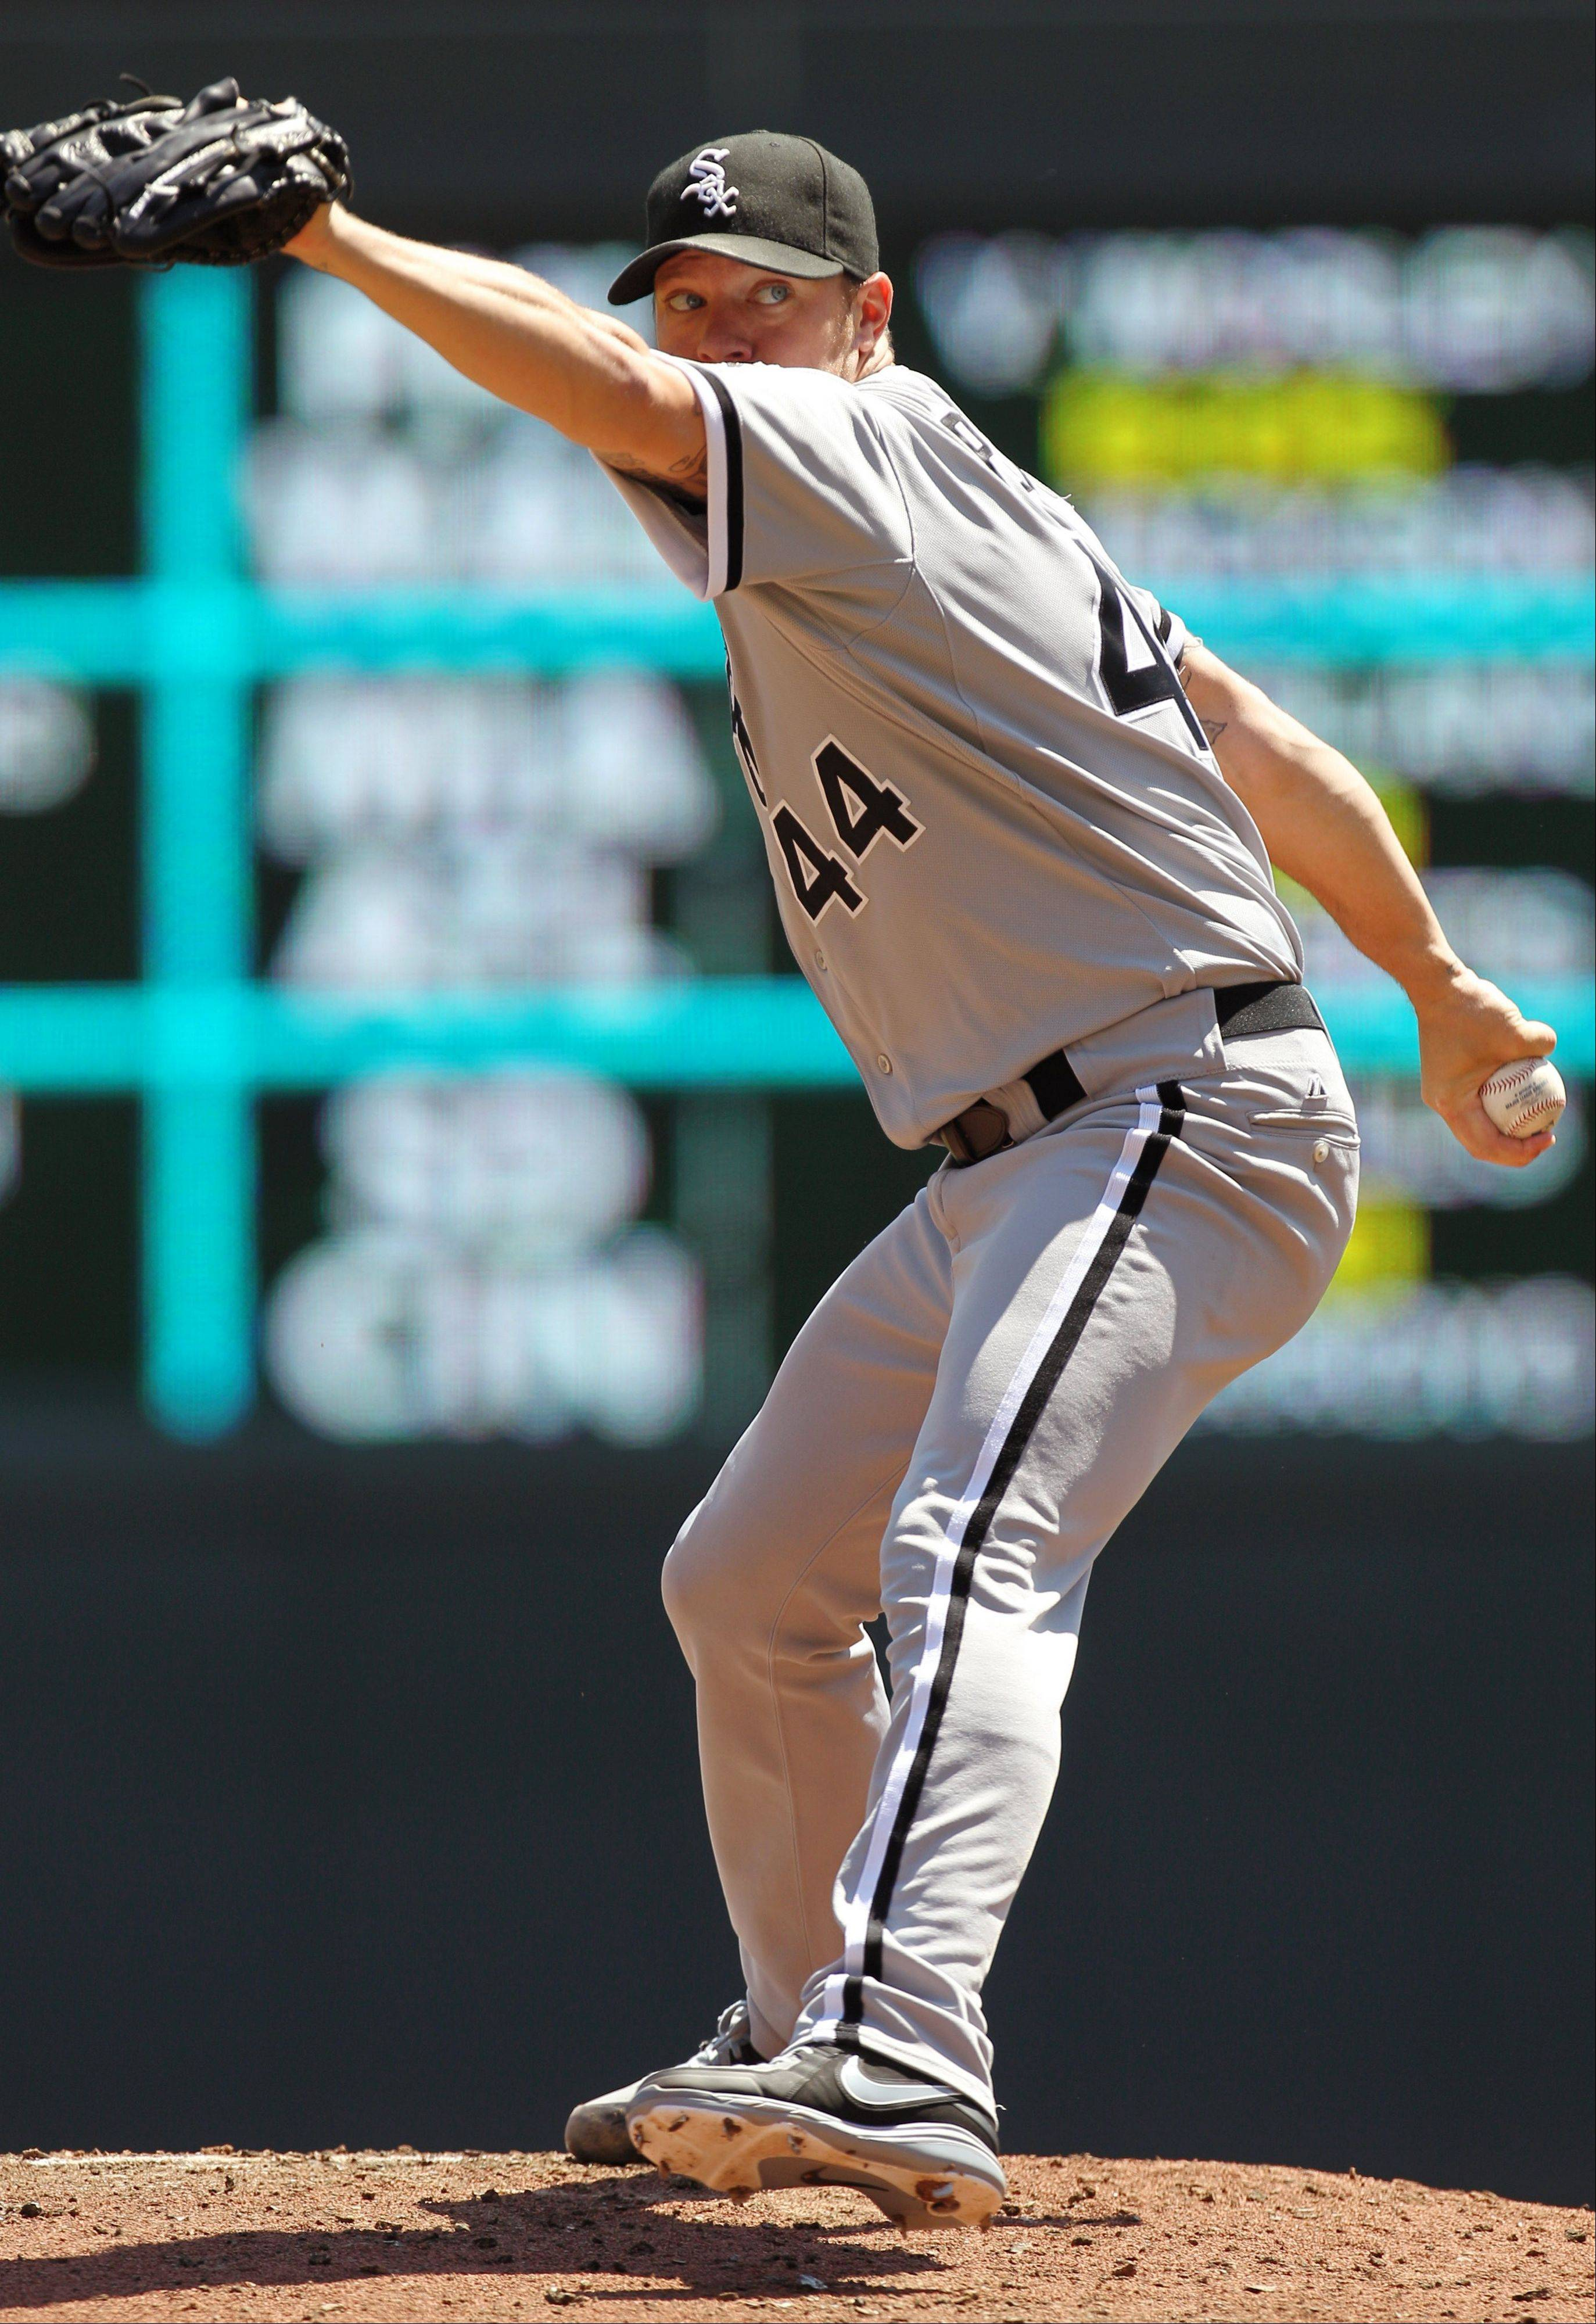 Pitcher Jake Peavy throws against the Minnesota Twins during the second inning of a baseball game, Wednesday, Aug. 1, 2012, in Minneapolis.